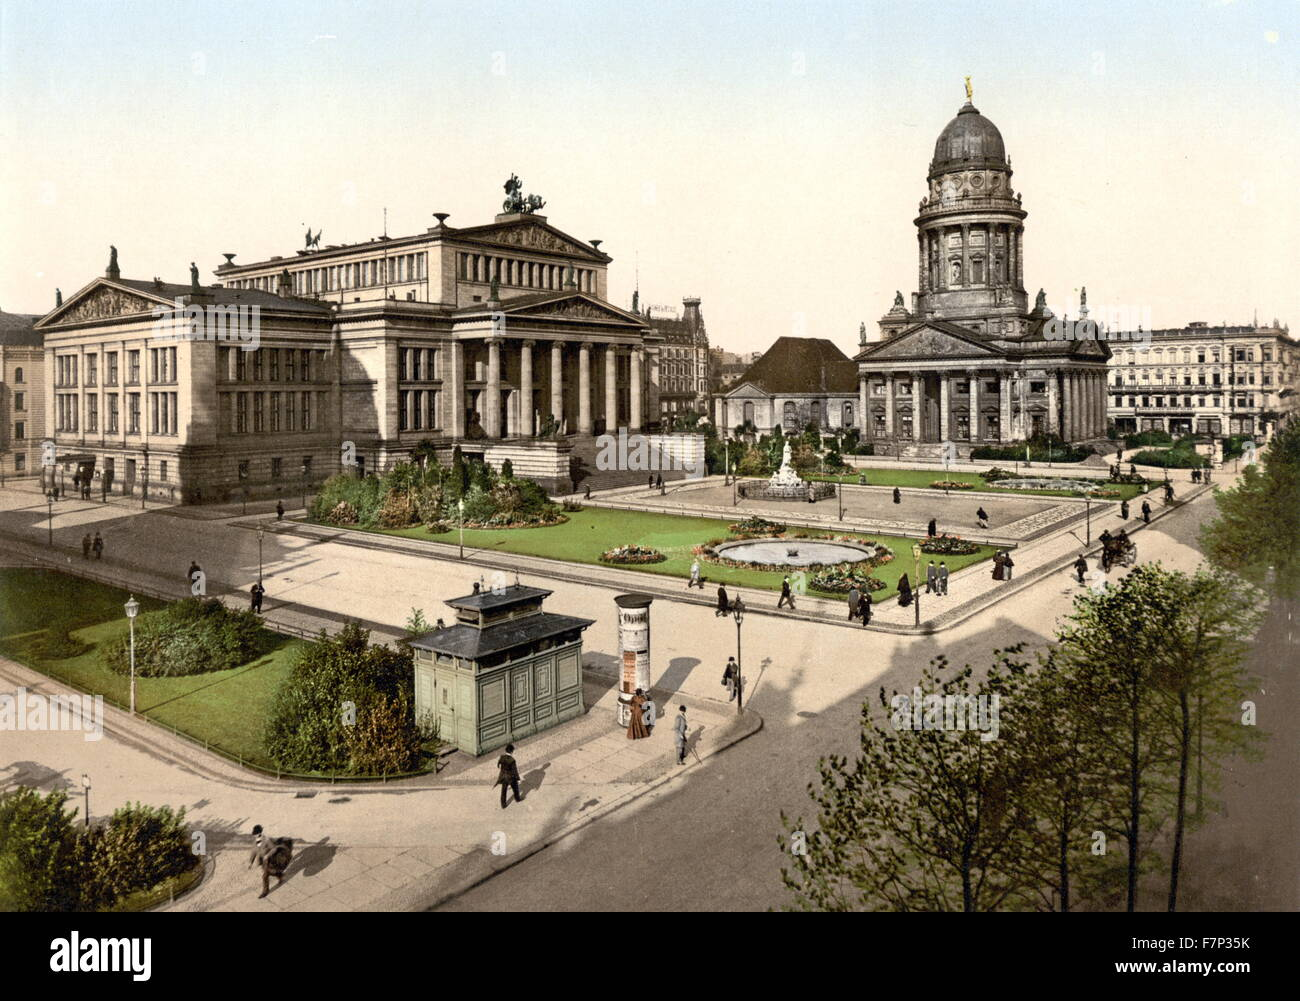 Photomechanical print of Schiller Square, Berlin, Germany. Dated 1896 - Stock Image